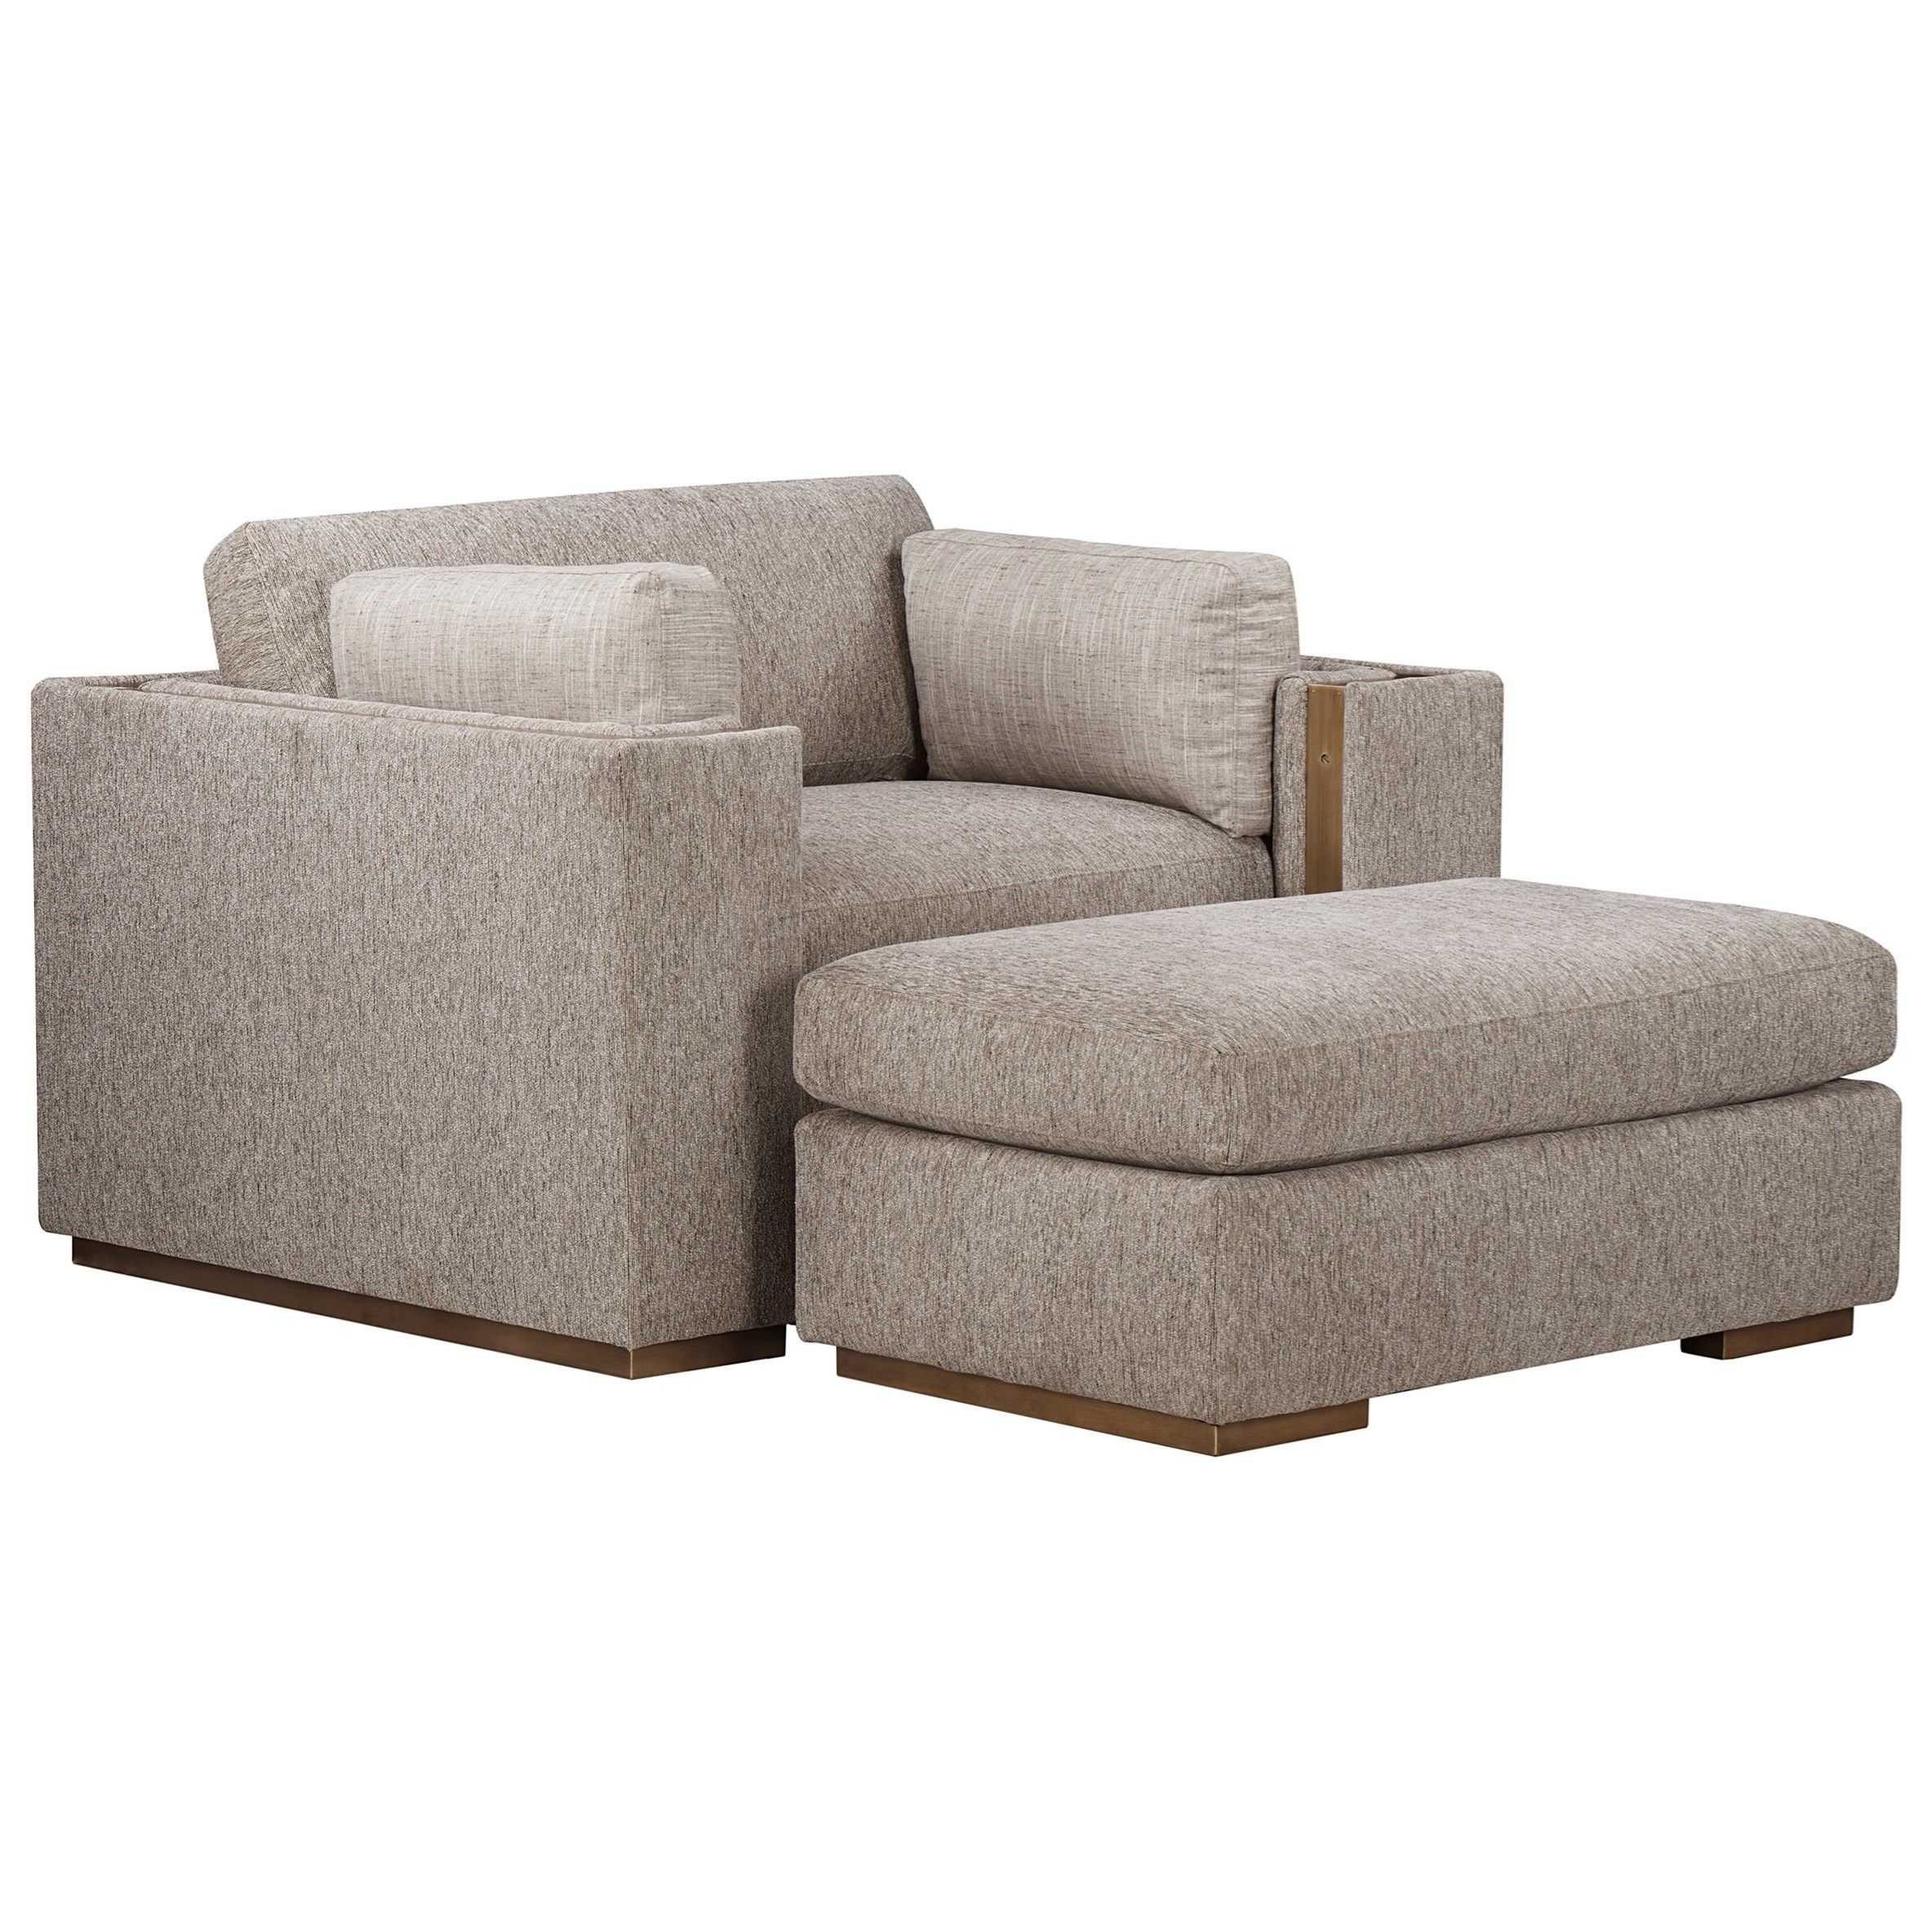 WoodWright Upholstery Chair and Ottoman Set by A.R.T. Furniture Inc at Dream Home Interiors